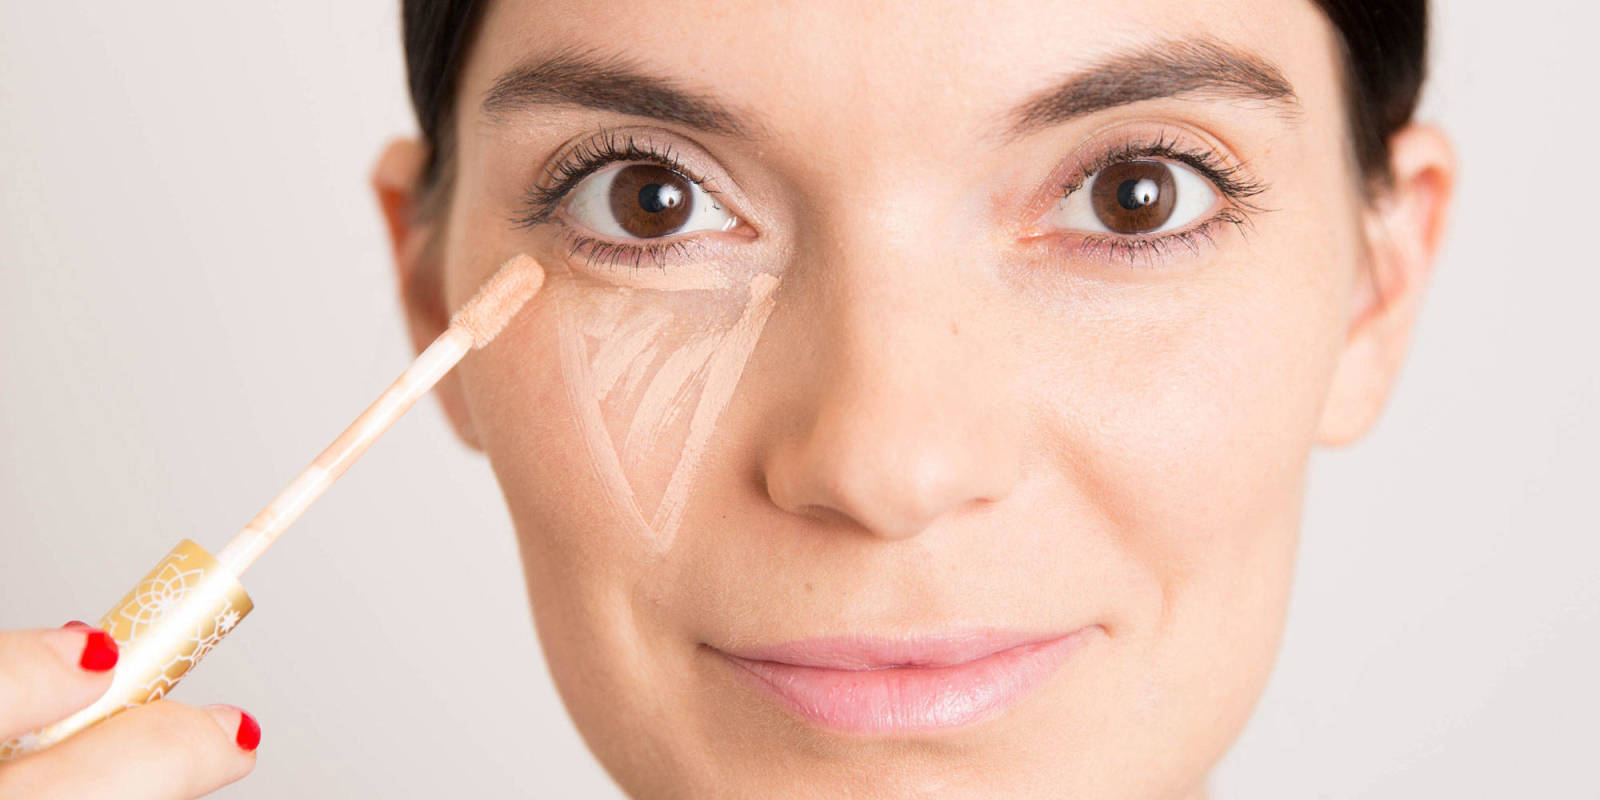 Is There A Right Way To Apply Concealer?